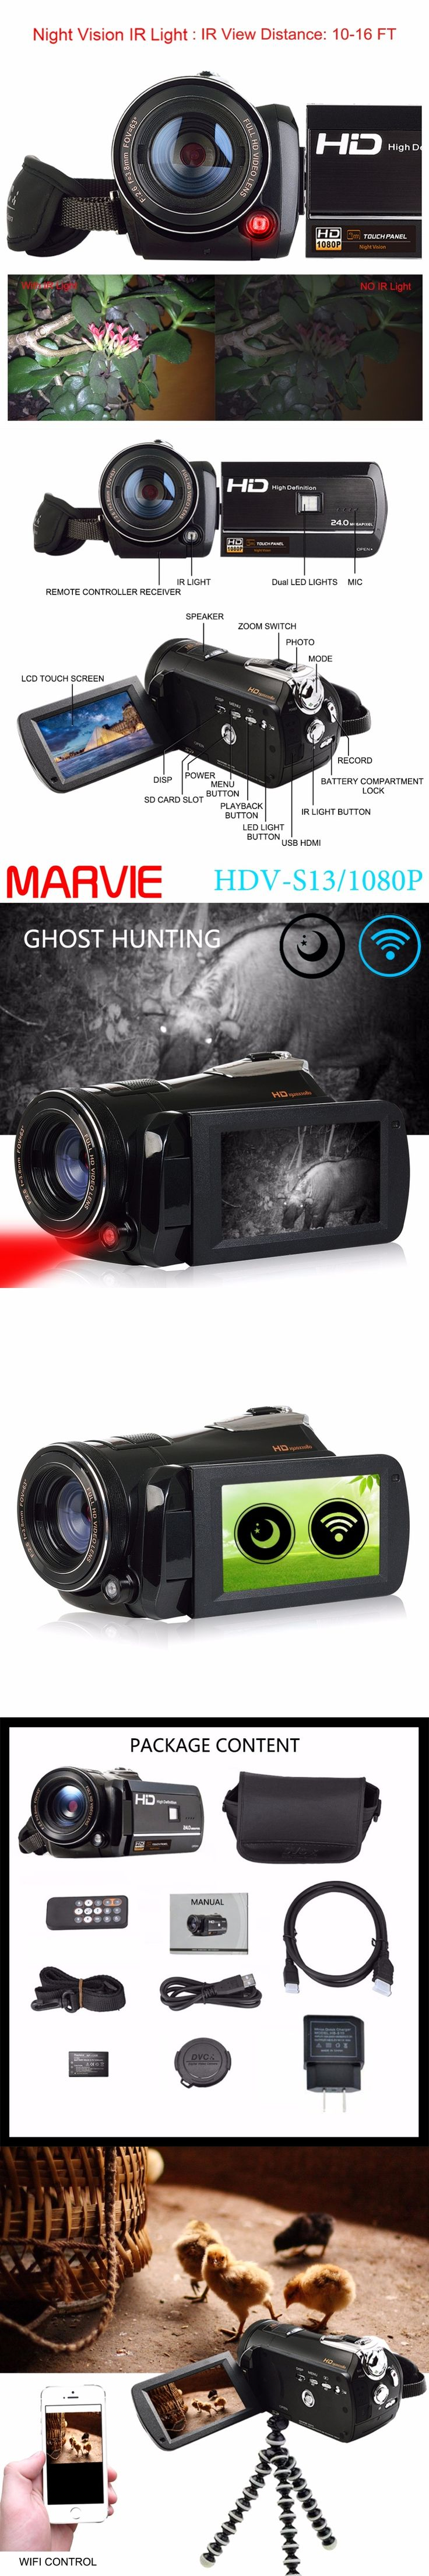 Marvie LED Fill Lights Portable 24 0 MP 3 0 Screen DV Camera FHD Camcorder Digital Video Recorder